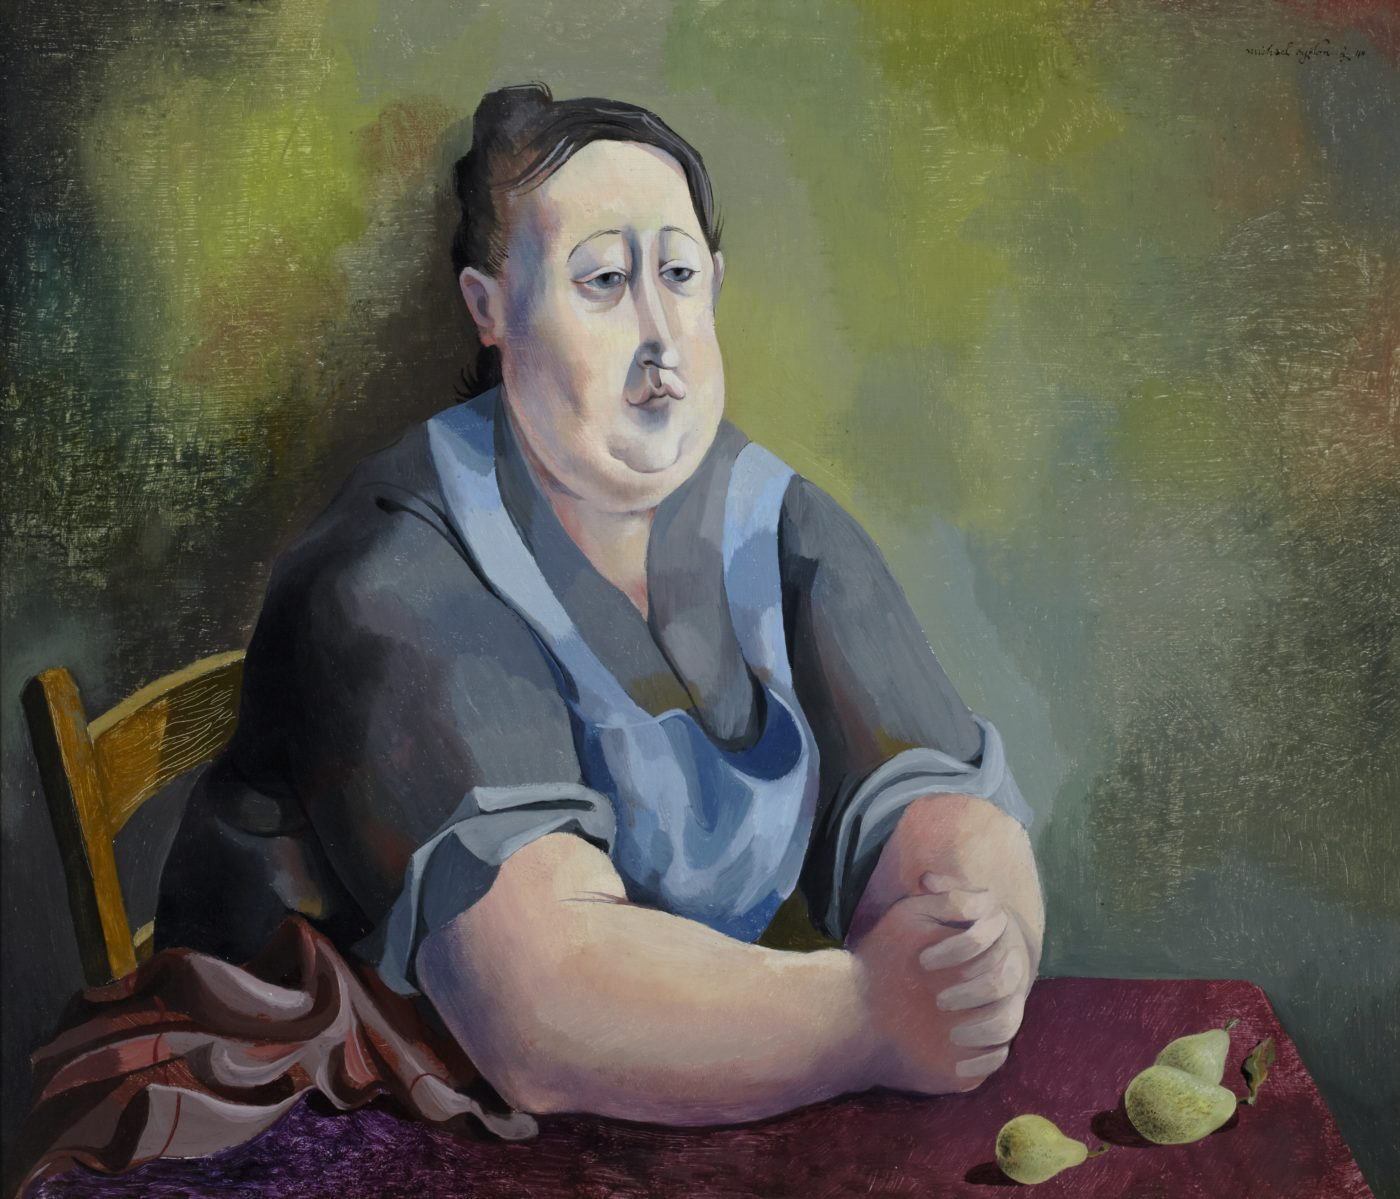 Michael Ayrton (1921-1975), Portrait with Pears